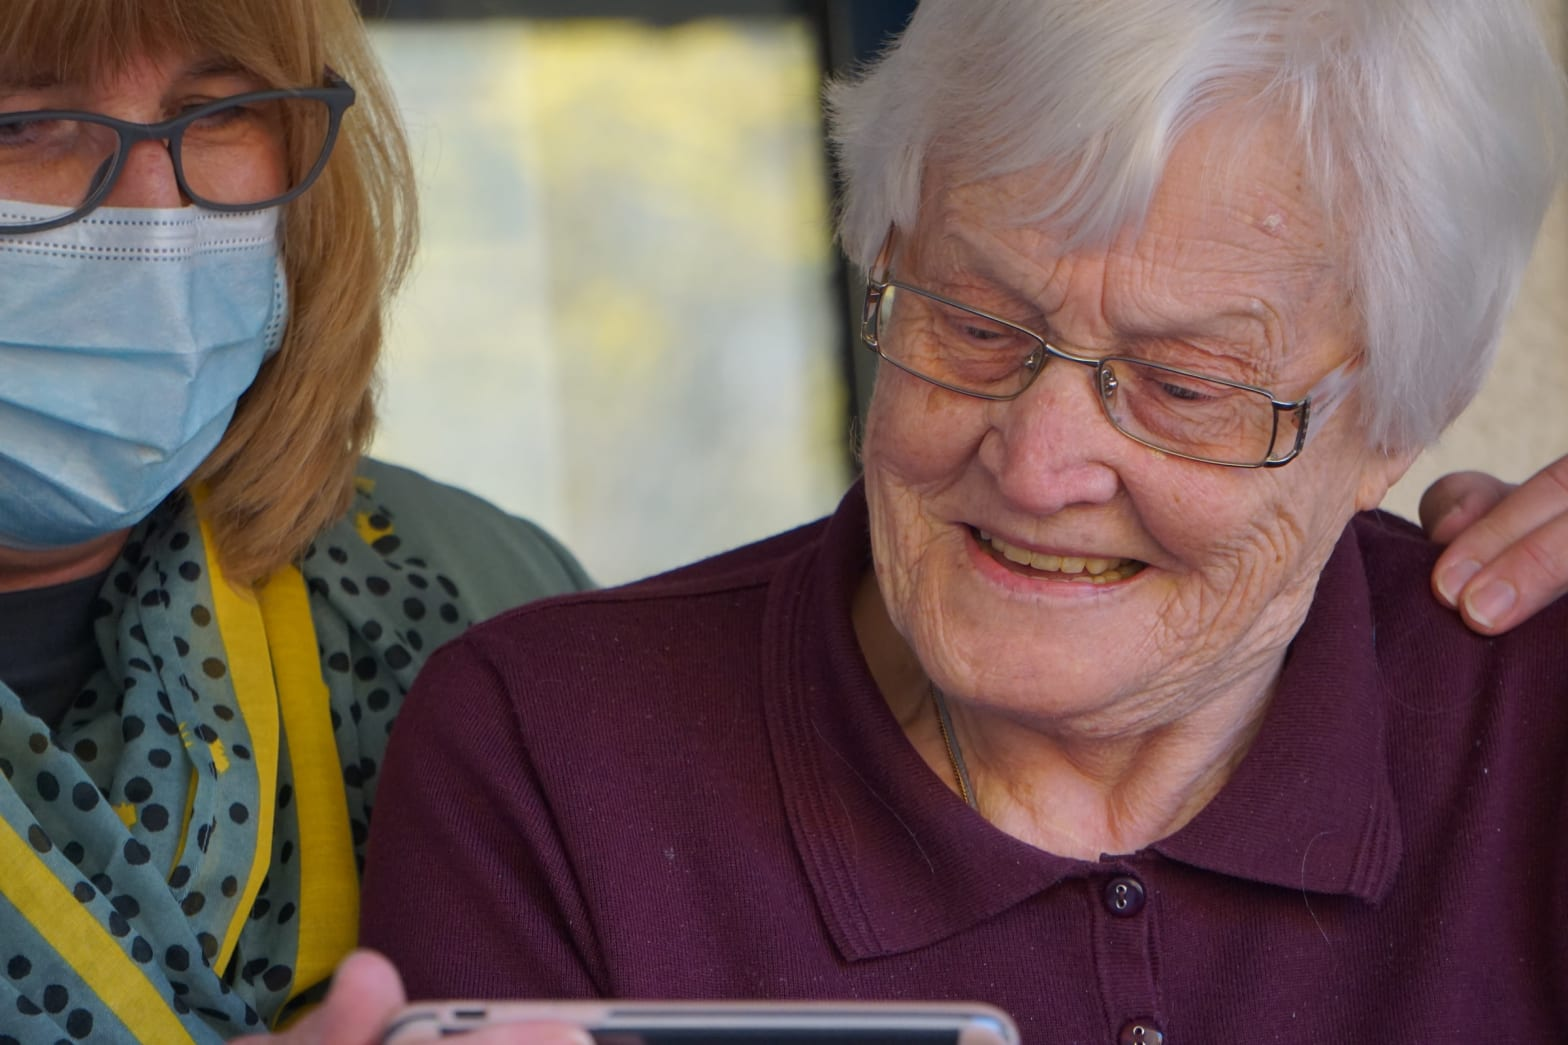 A strategic way forward for Aged Care